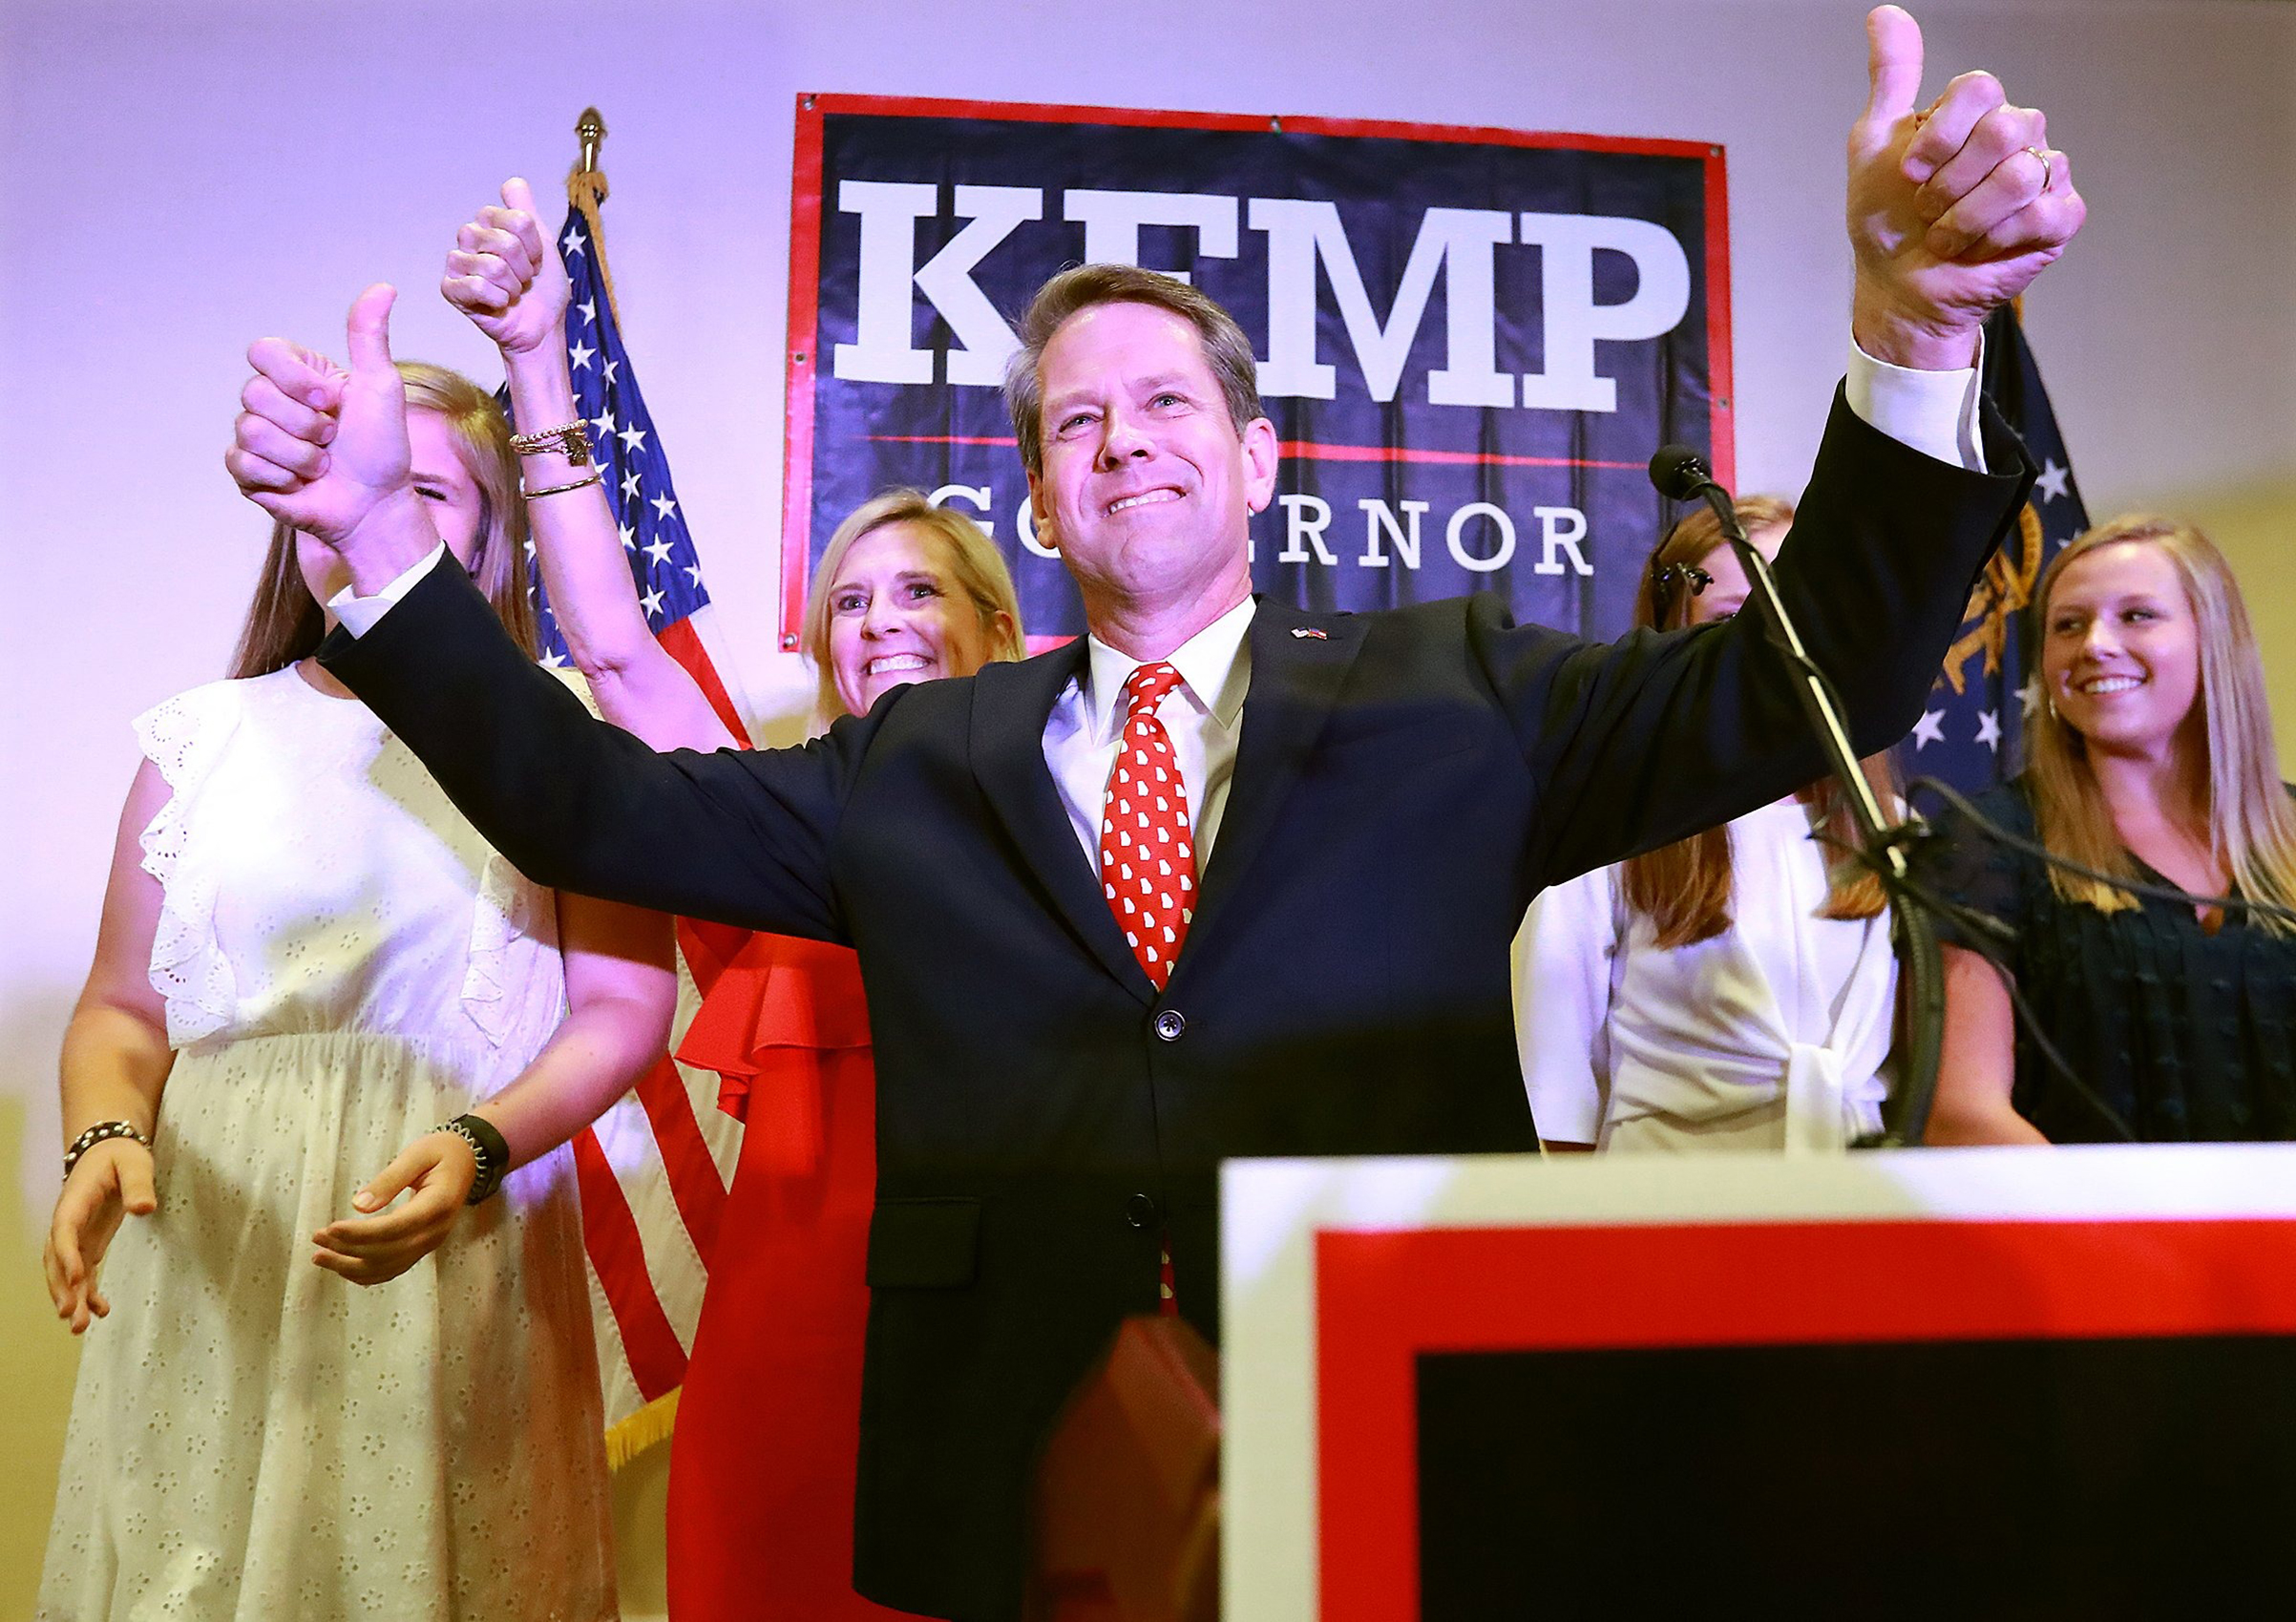 Abrams will face Kemp, who won a GOP runoff on July 24, in November's general election